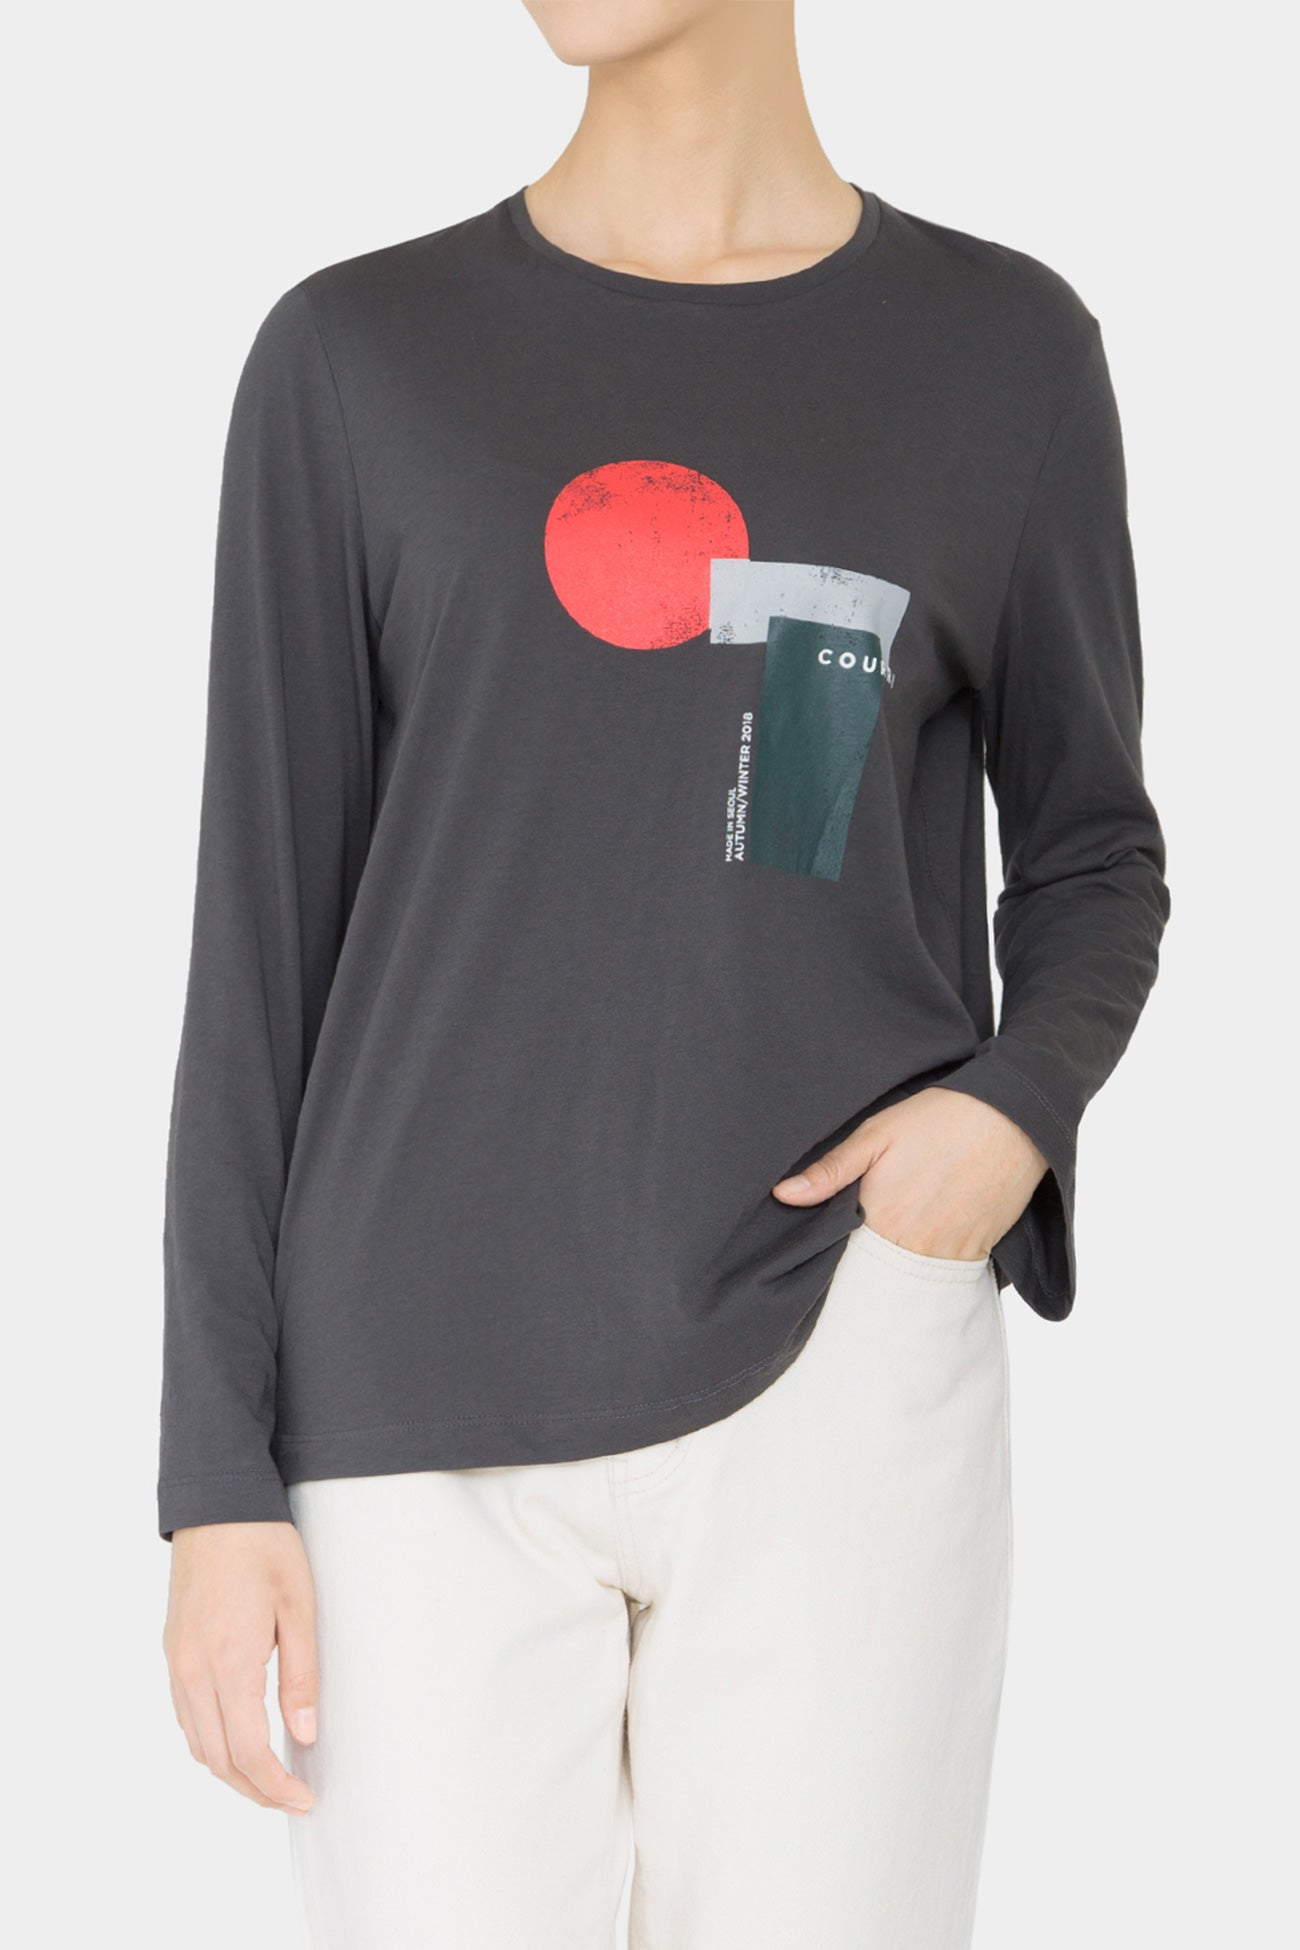 VERSION 1 - CHARCOAL PRINTED LIO BELLSLEEVE T-SHIRT